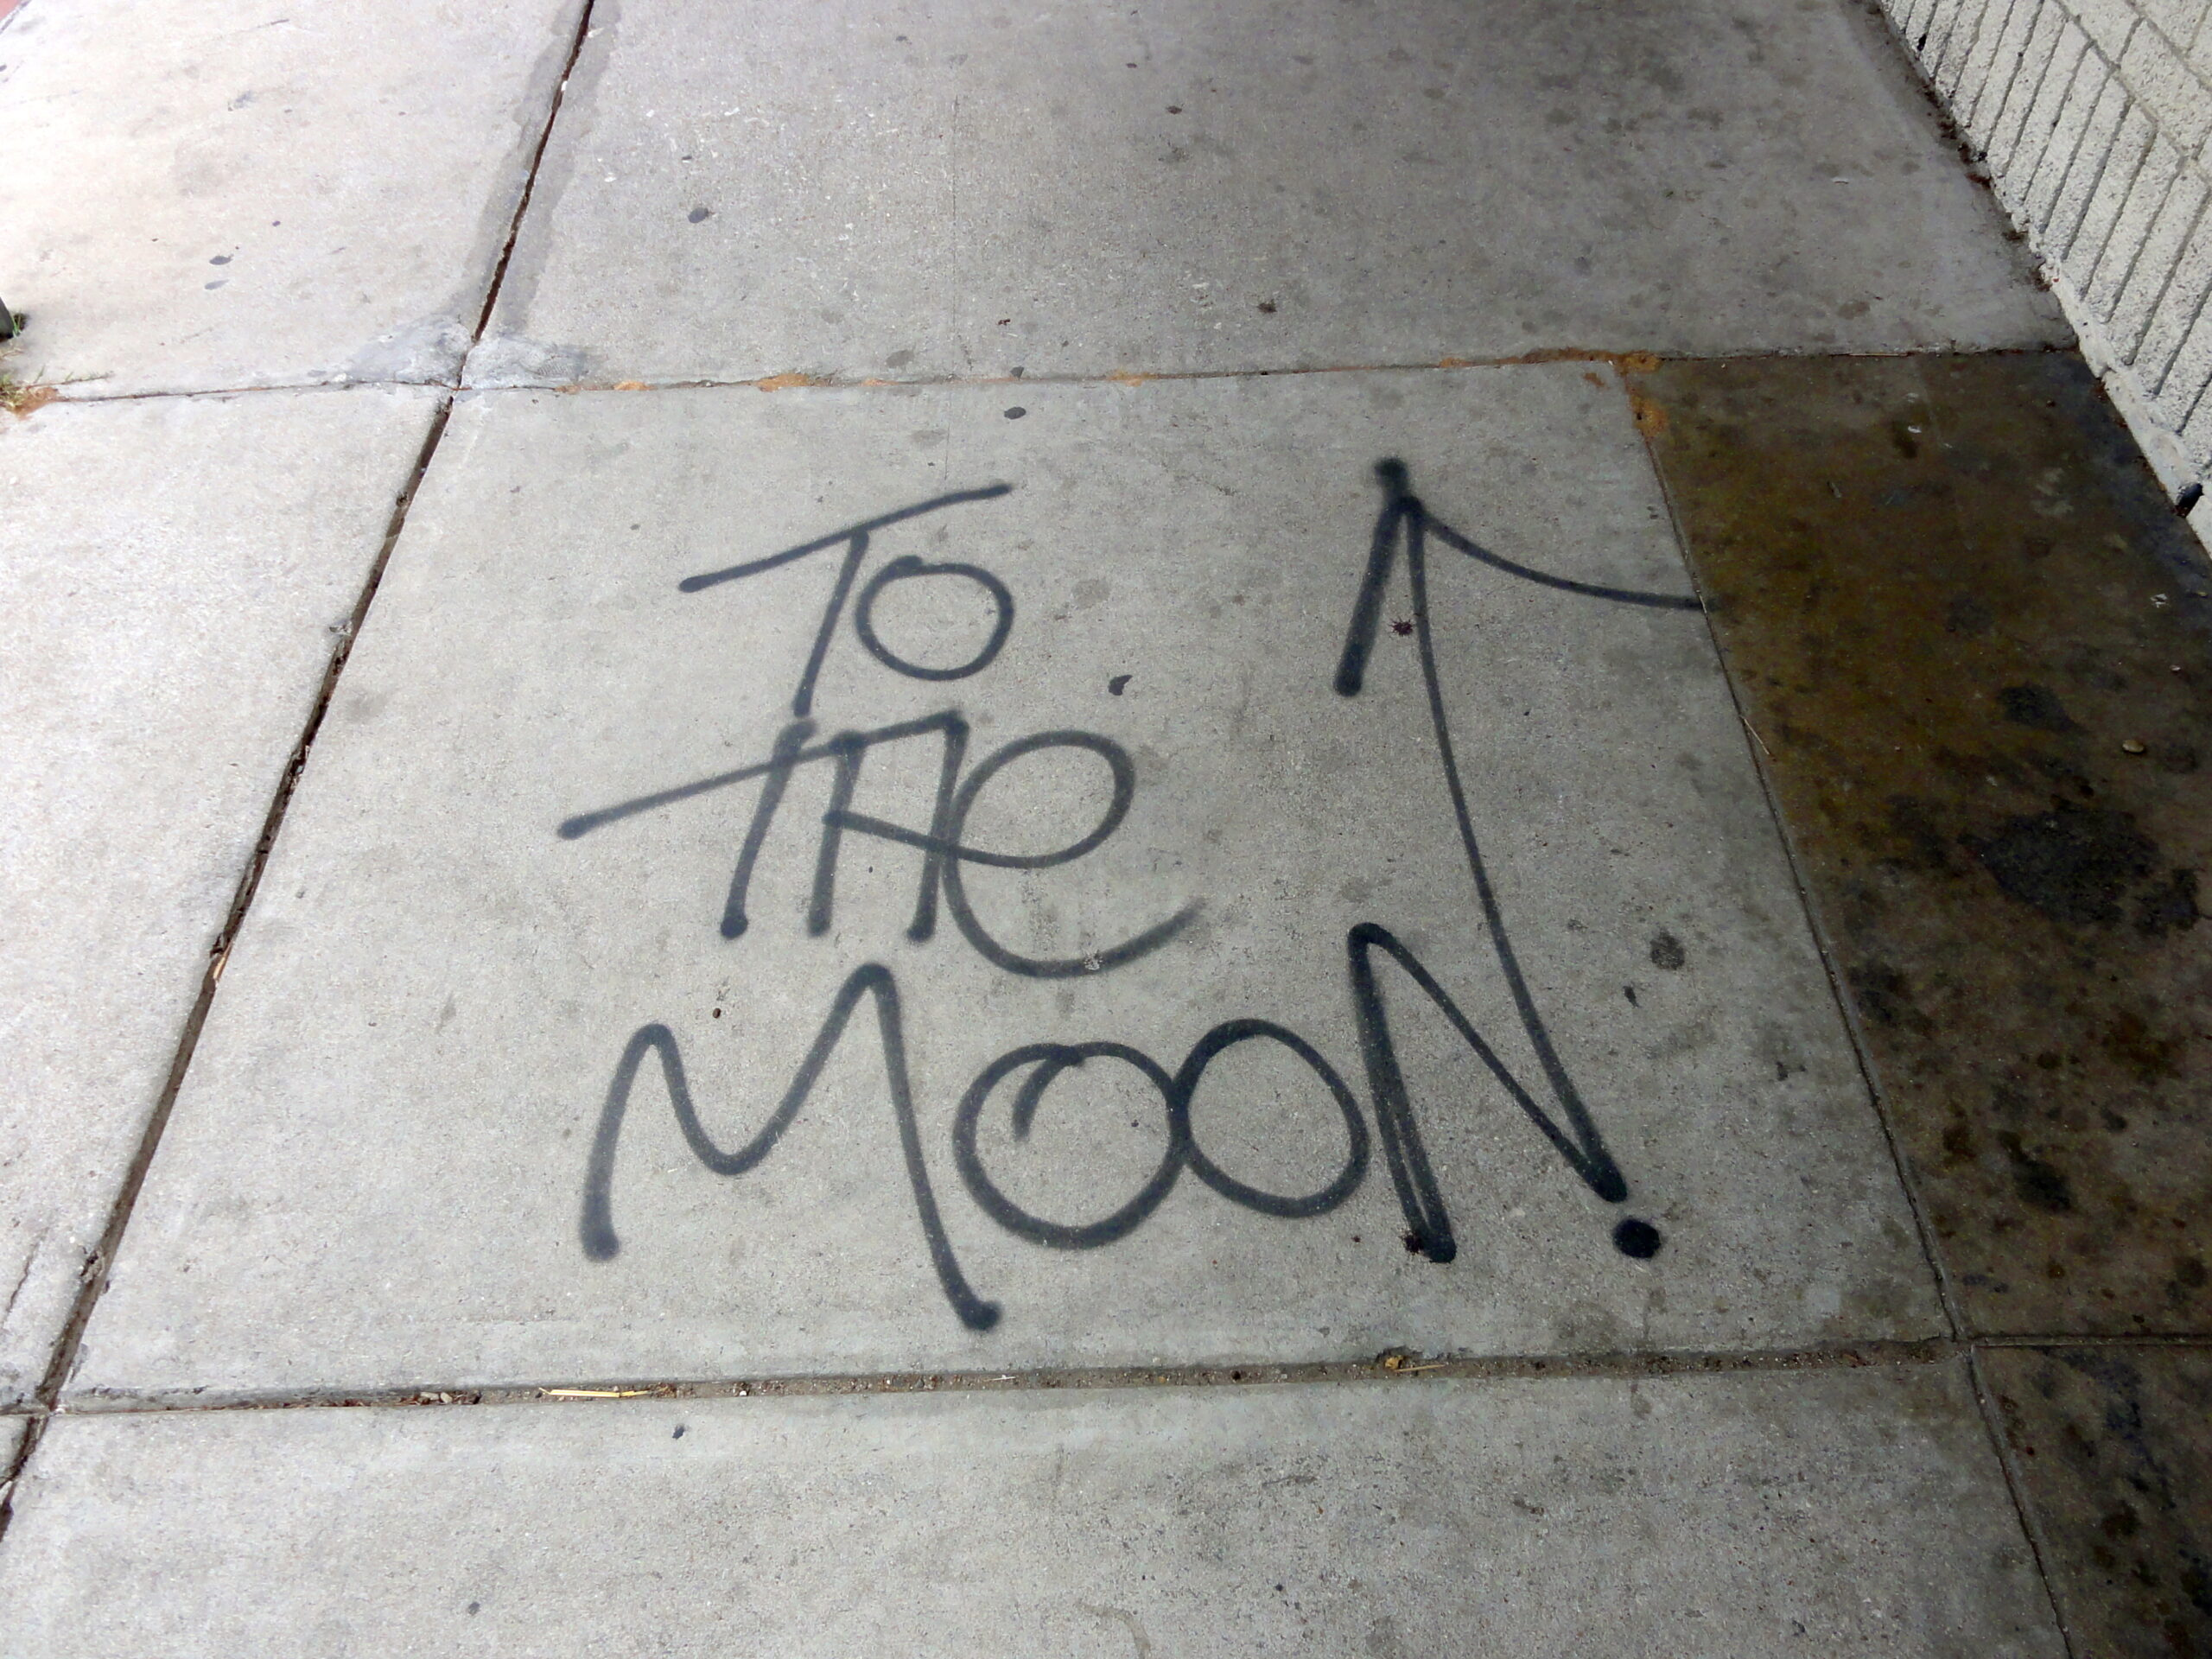 To the Moon Sidewalk